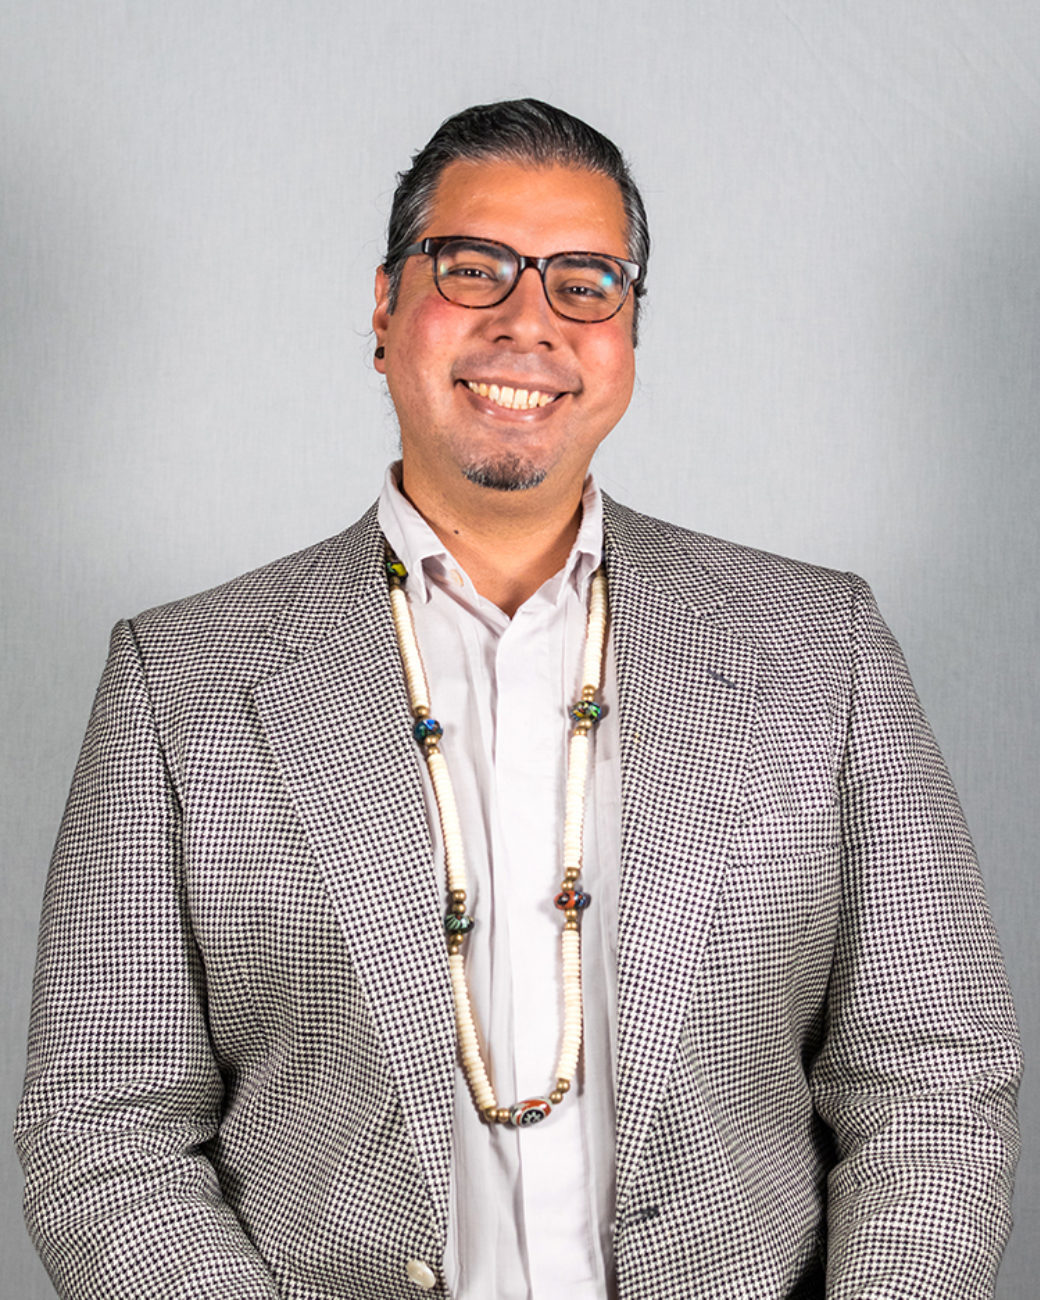 A person with dark hair and glasses poses for a photo, wearing a gray blazer and a beaded necklace